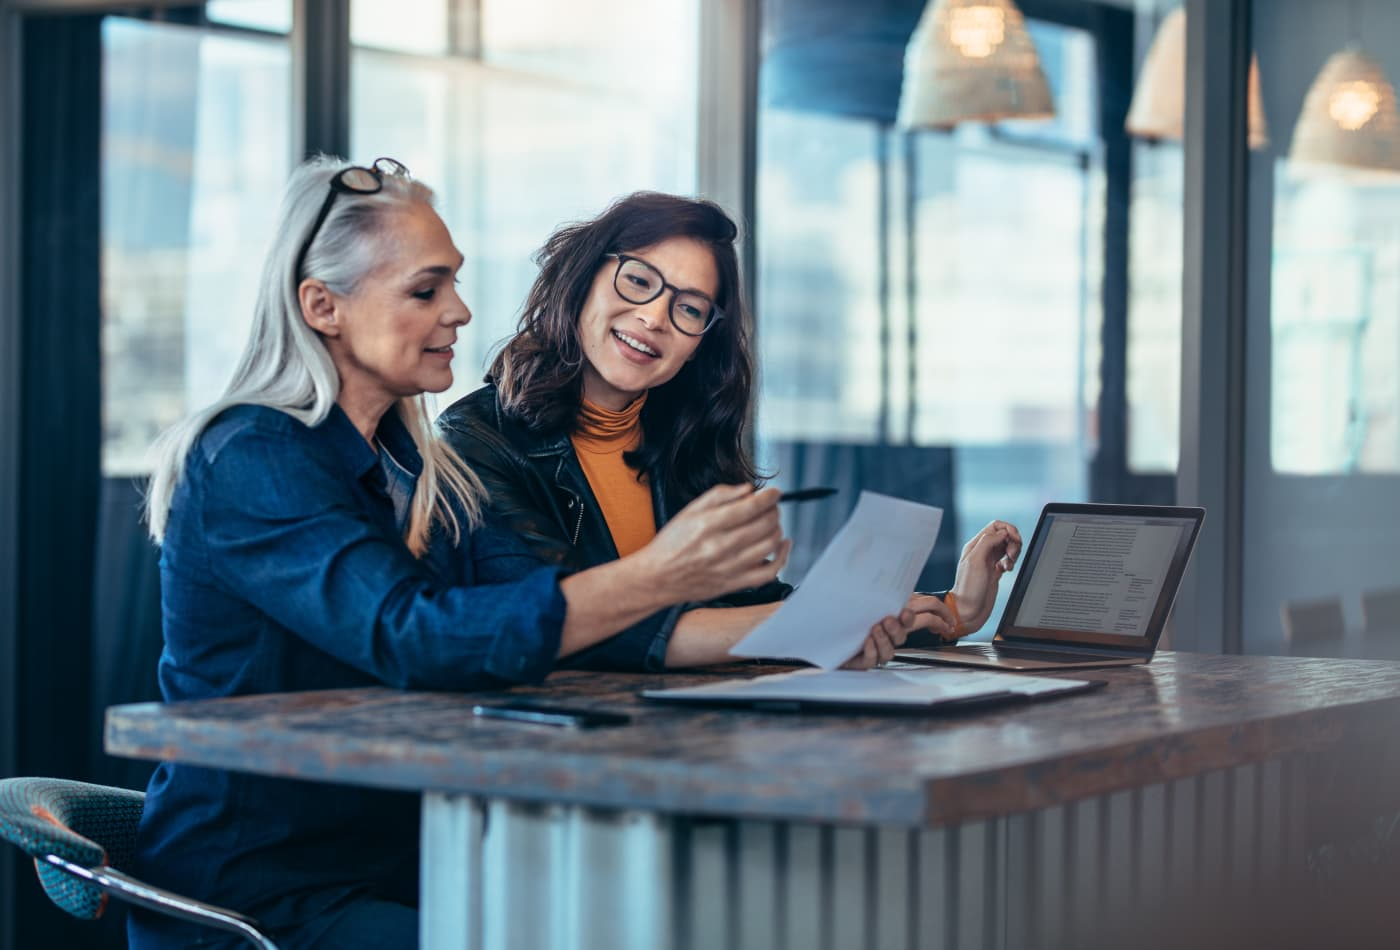 Women should focus on these 3 career skills to get promoted and make more money